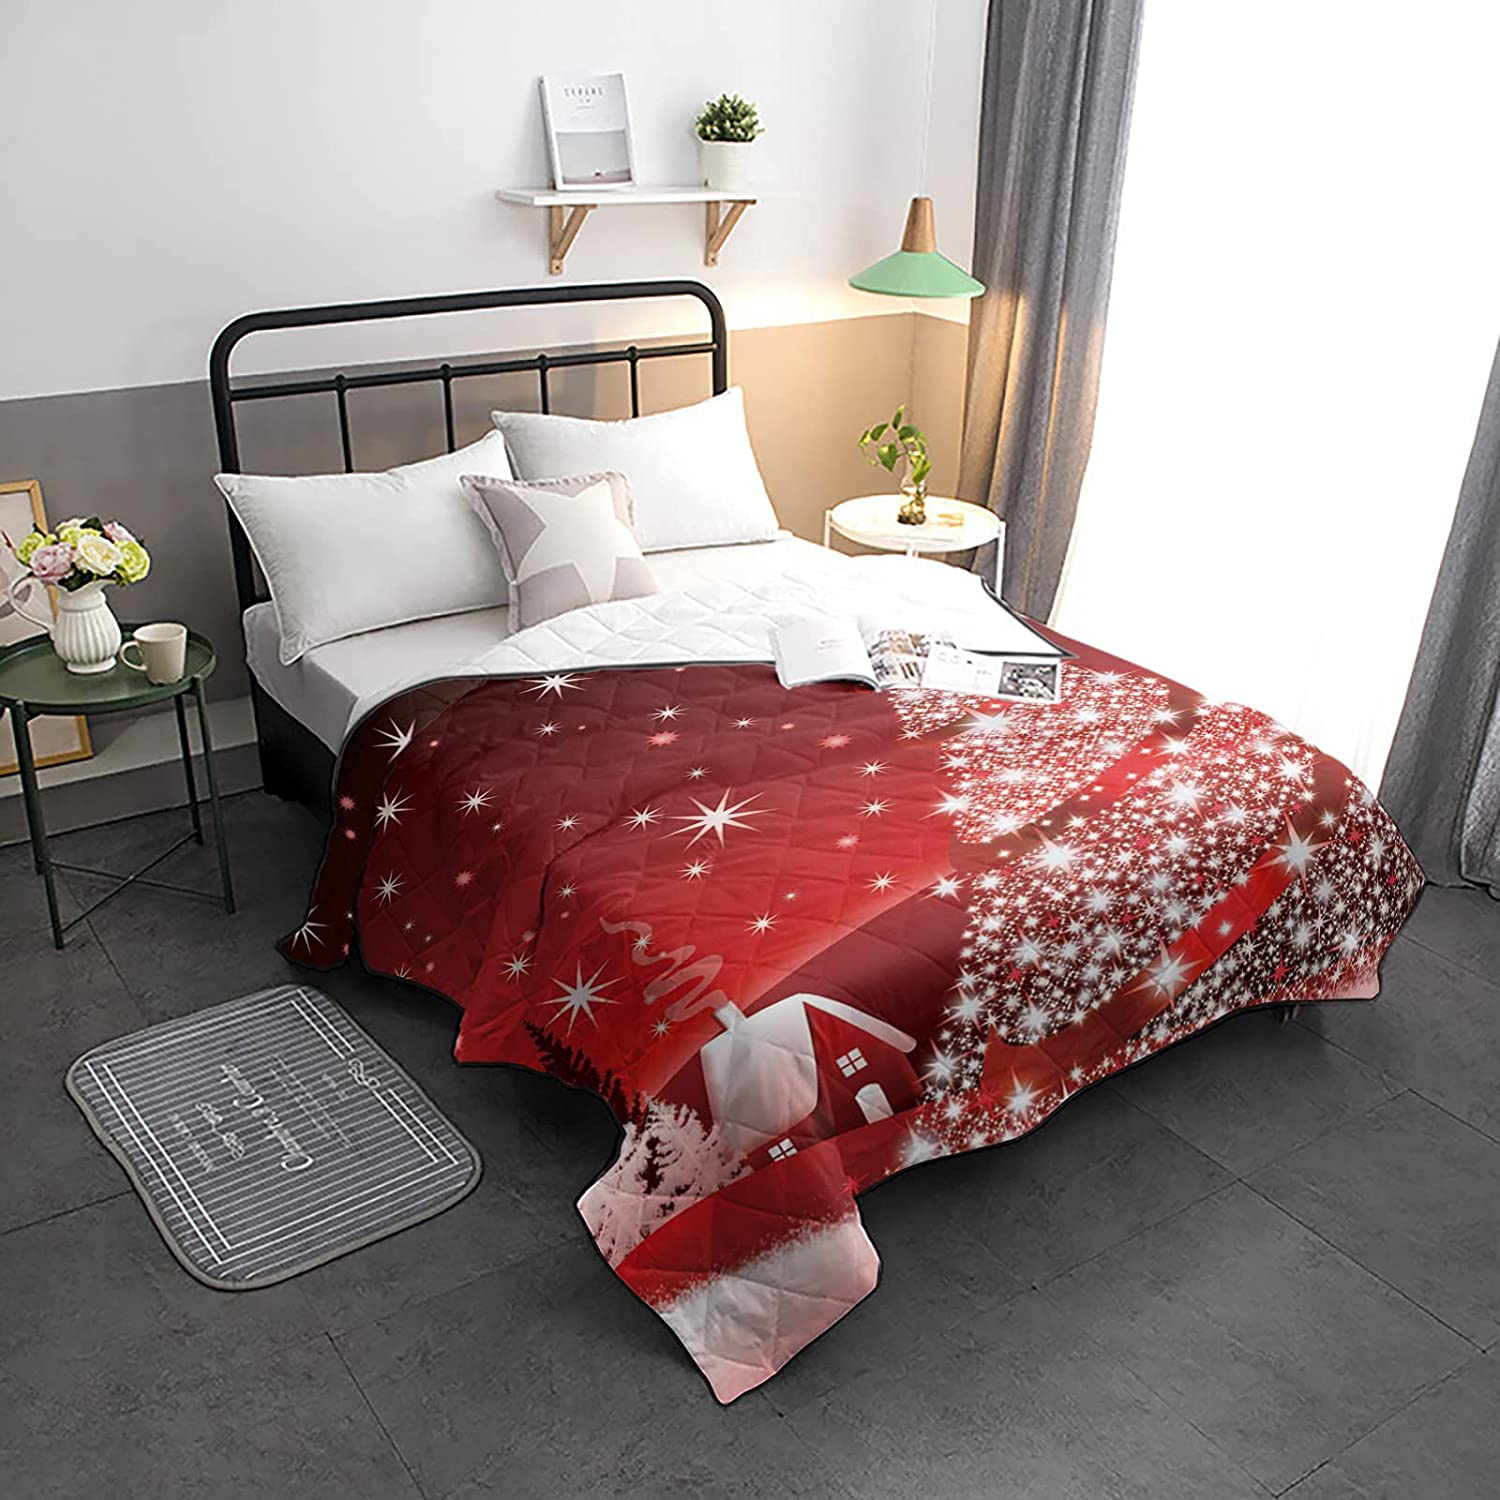 HELLOWINK Bedding Comforter Duvet Lighweight Size-Soft Qu Courier shipping free A surprise price is realized Twin